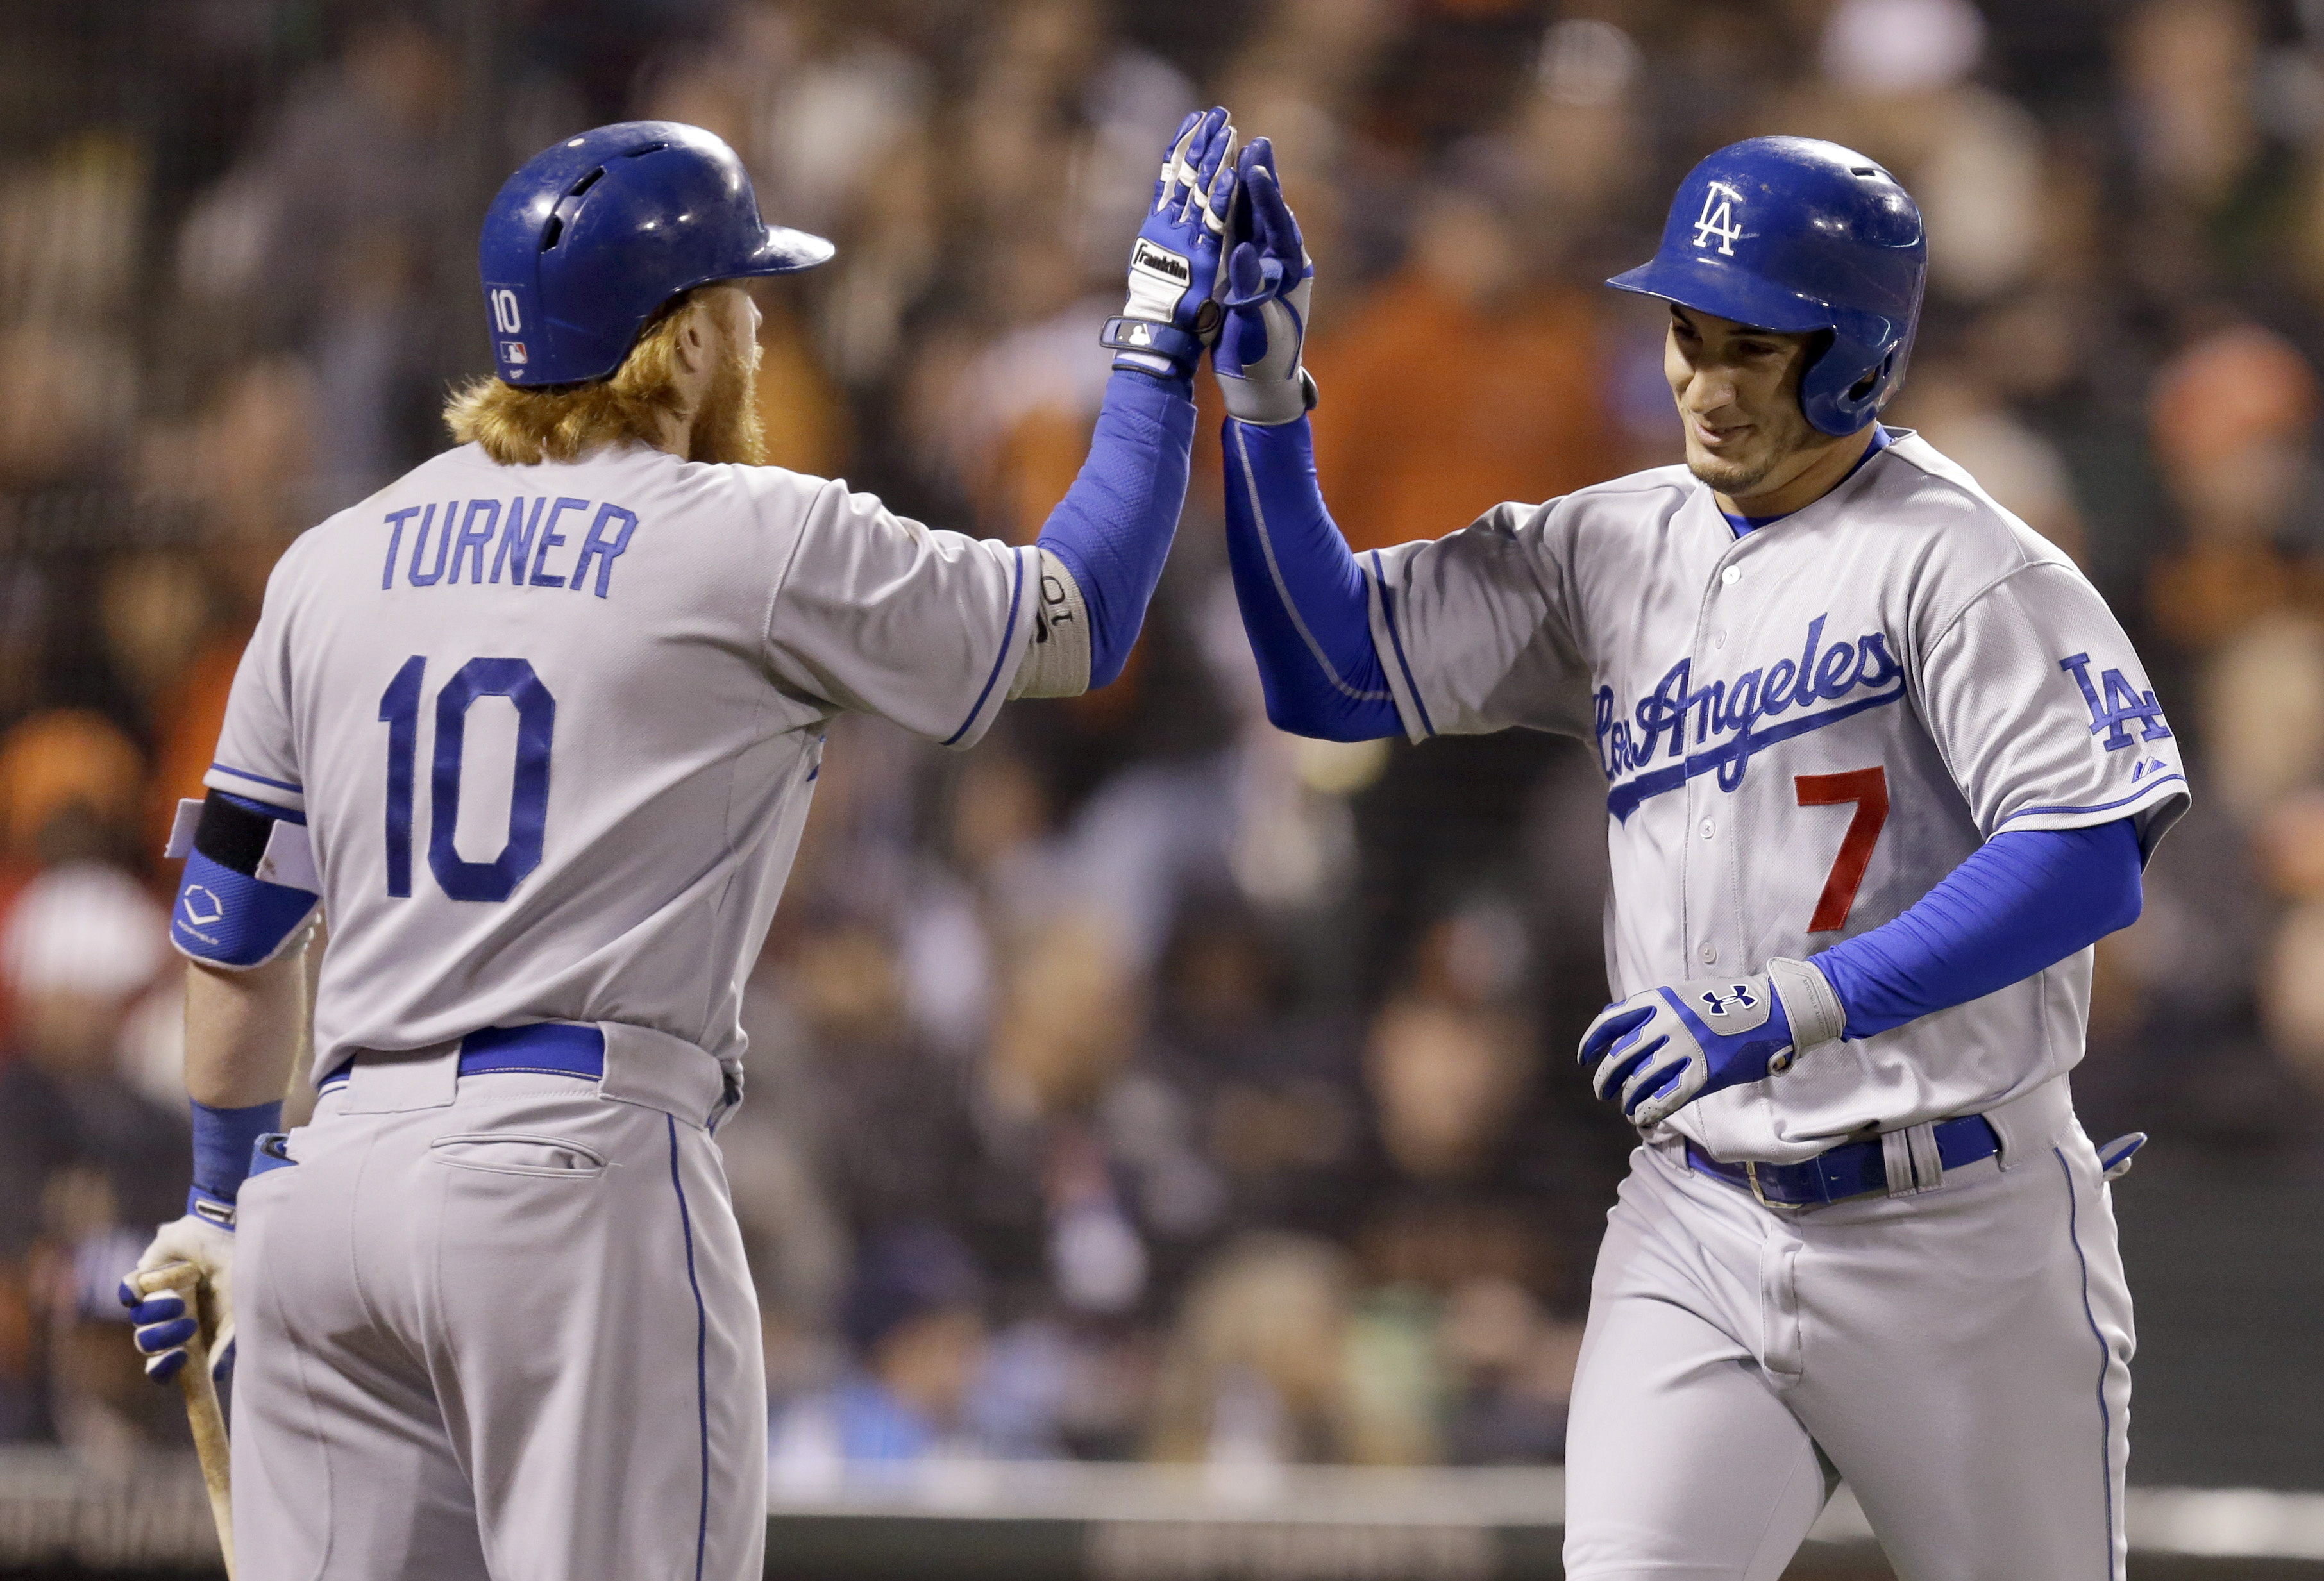 Los Angeles Dodgers' Alex Guerrero, right, is congratulated by Justin Turner (10) after Guerrero hit a two-run home run off San Francisco Giants' Madison Bumgarner in the seventh inning of a baseball game Wednesday, April 22, 2015, in San Francisco. (AP P